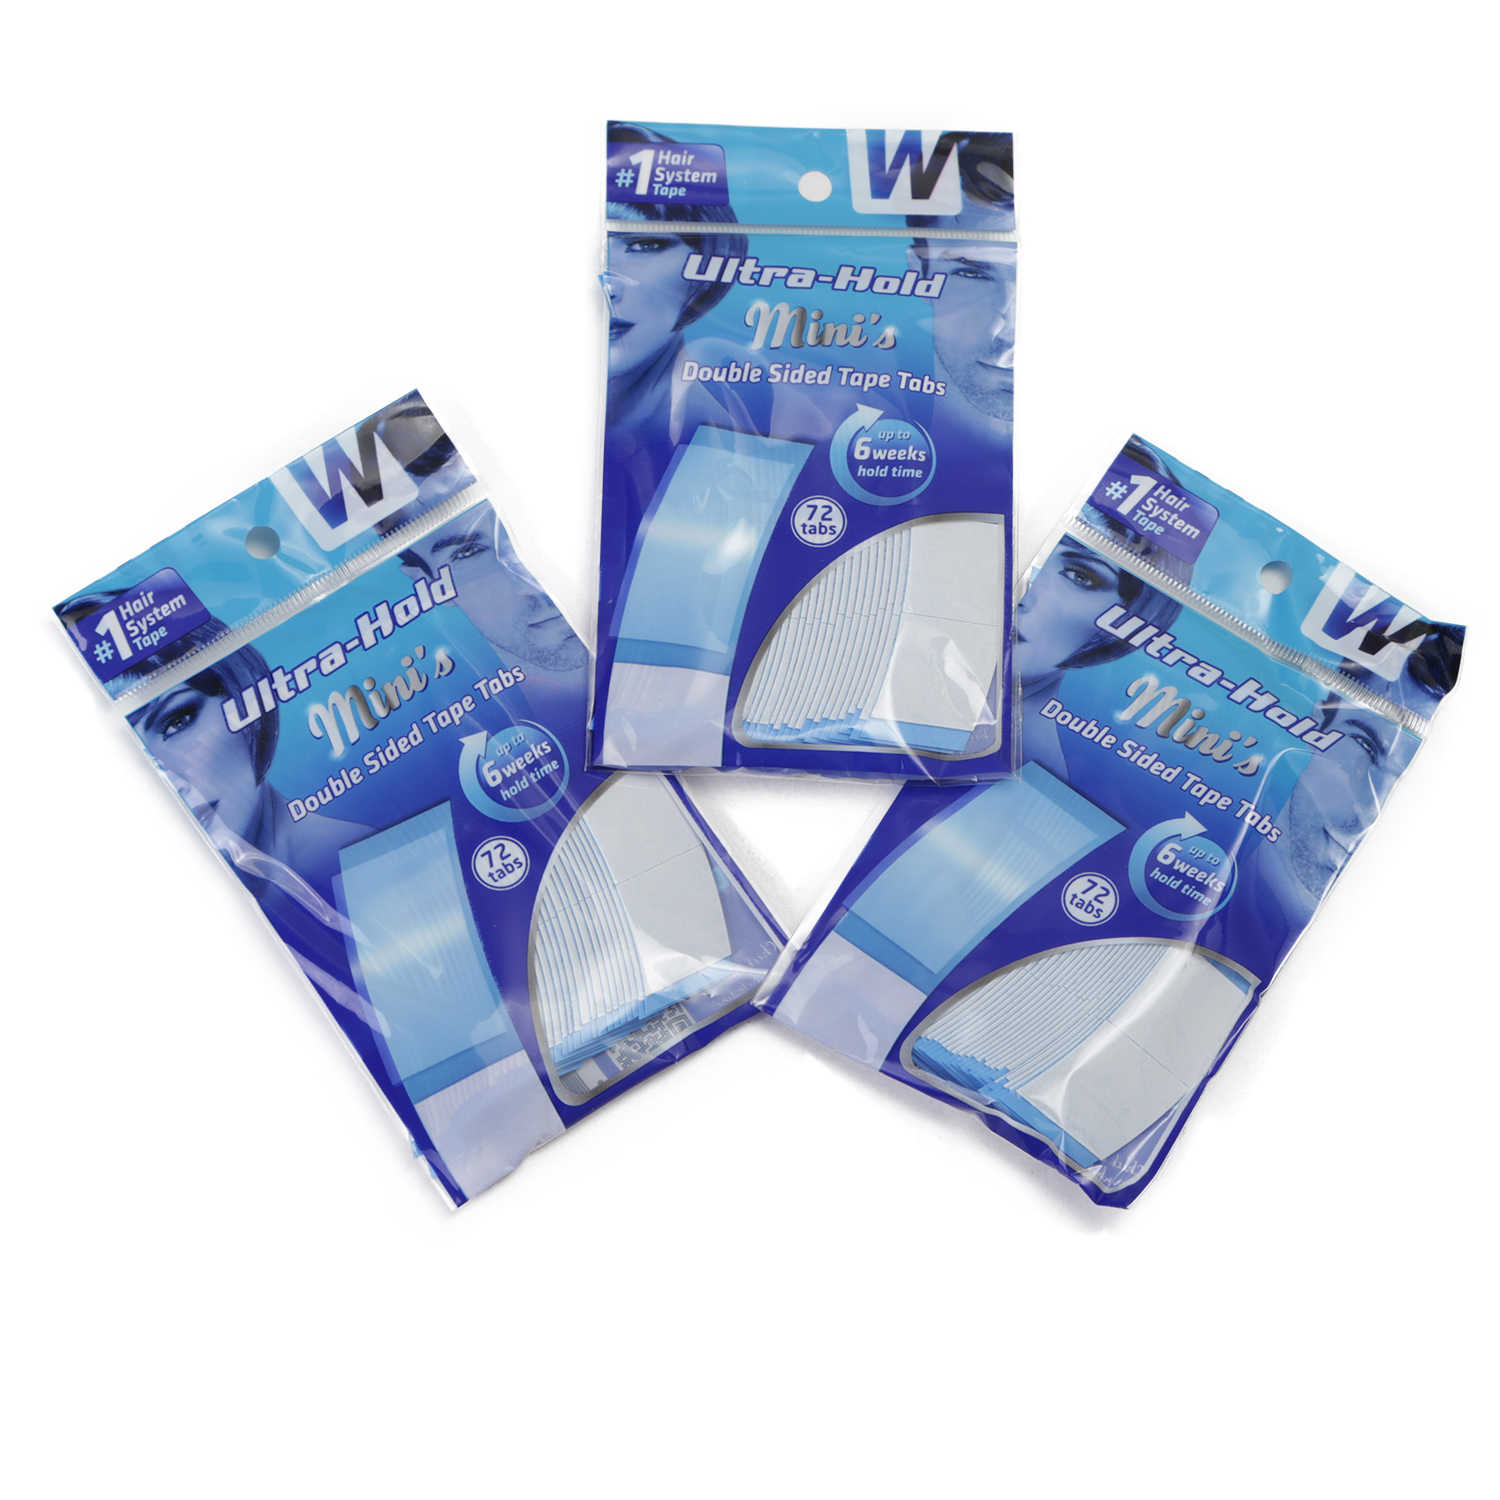 MW Double Side Tape Ultra Hold Minis Adhesive Tape Strips Pieces For Lace Wigs & Toupees 72 Tabs 0.8*3.1 Inch